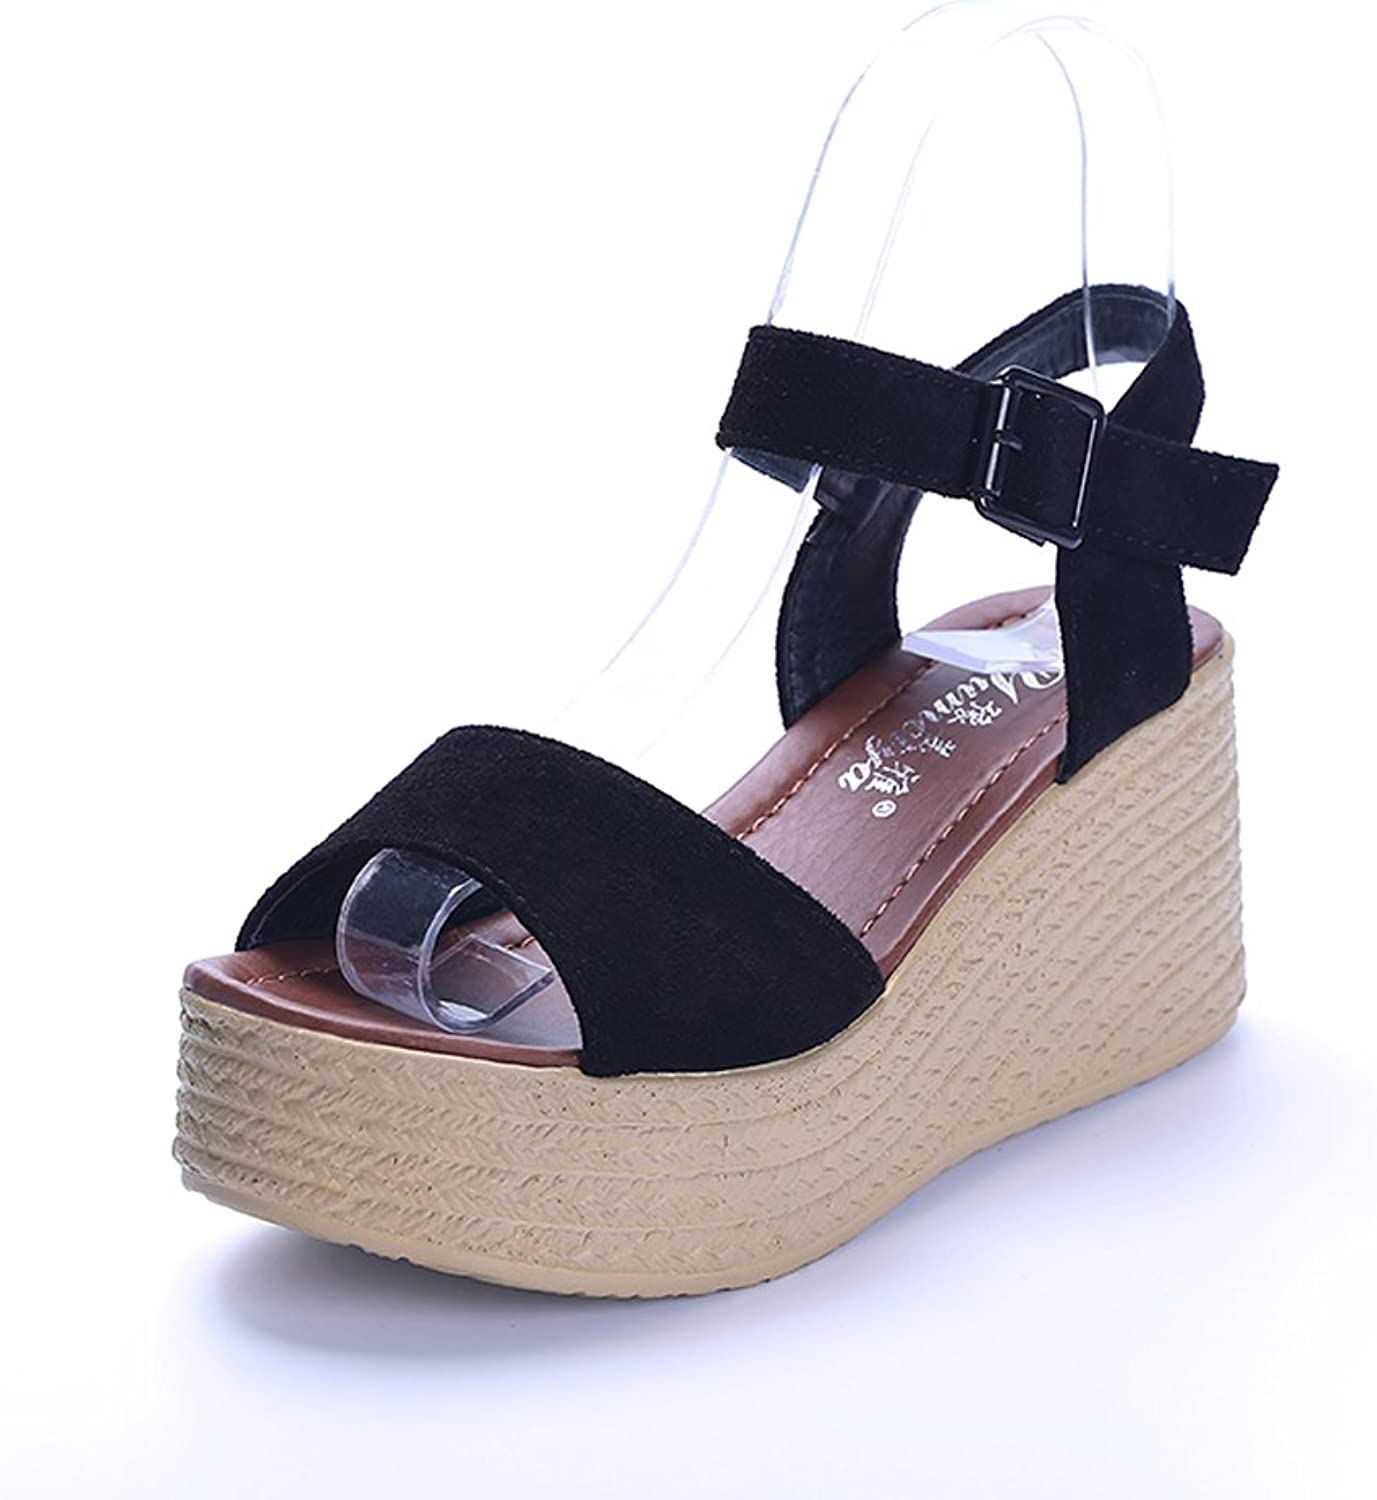 Rainbow high heels High-Heeled shoes for Women - Rainbow 2018 New, 7.5cm Wedge Sandals Women's Buckles with Platform shoes